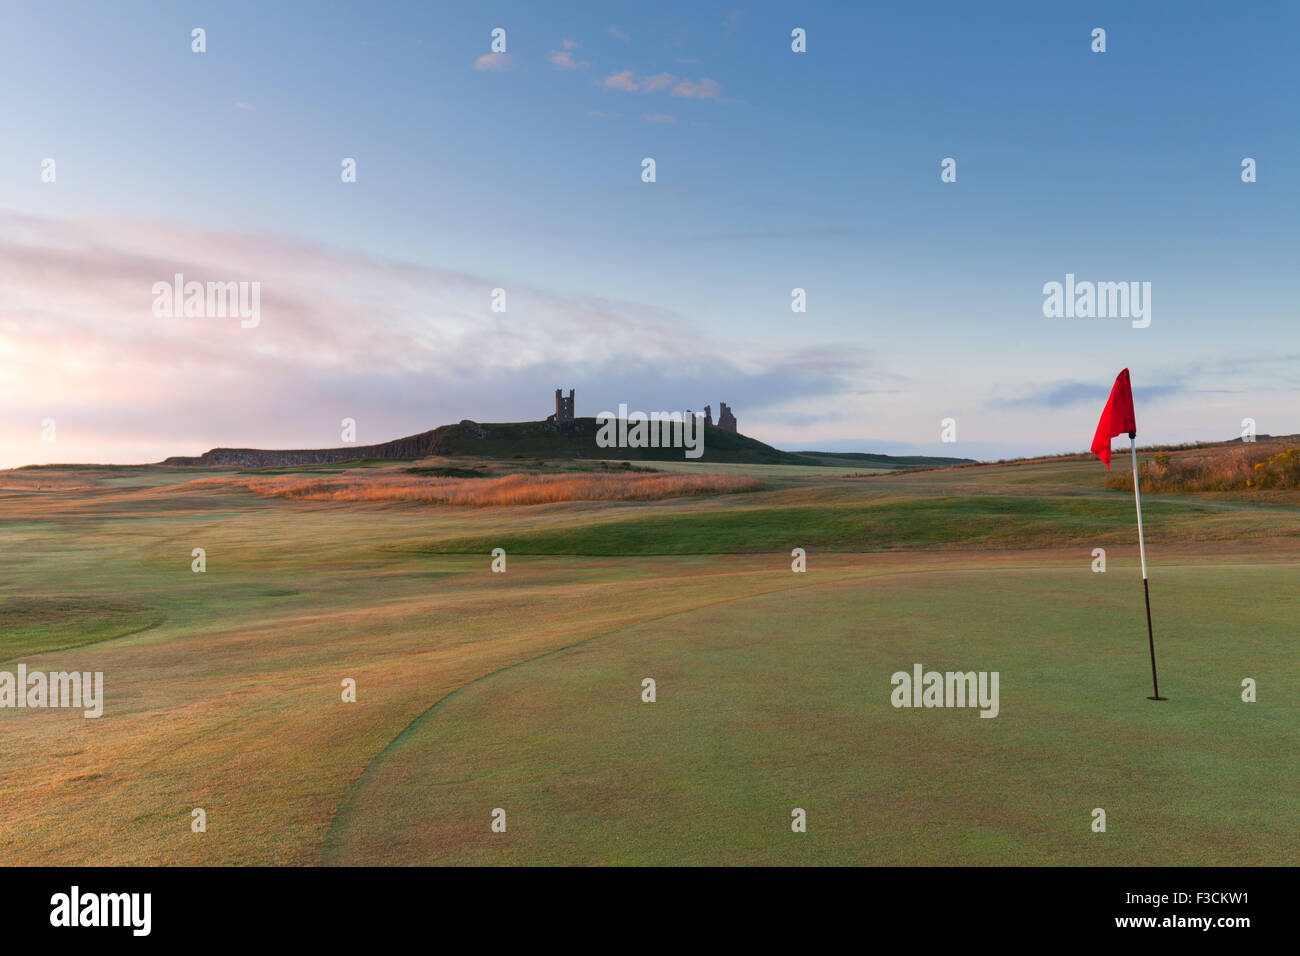 Dunstanburgh golf course early morning, Northumberland coast, UK - Stock Image